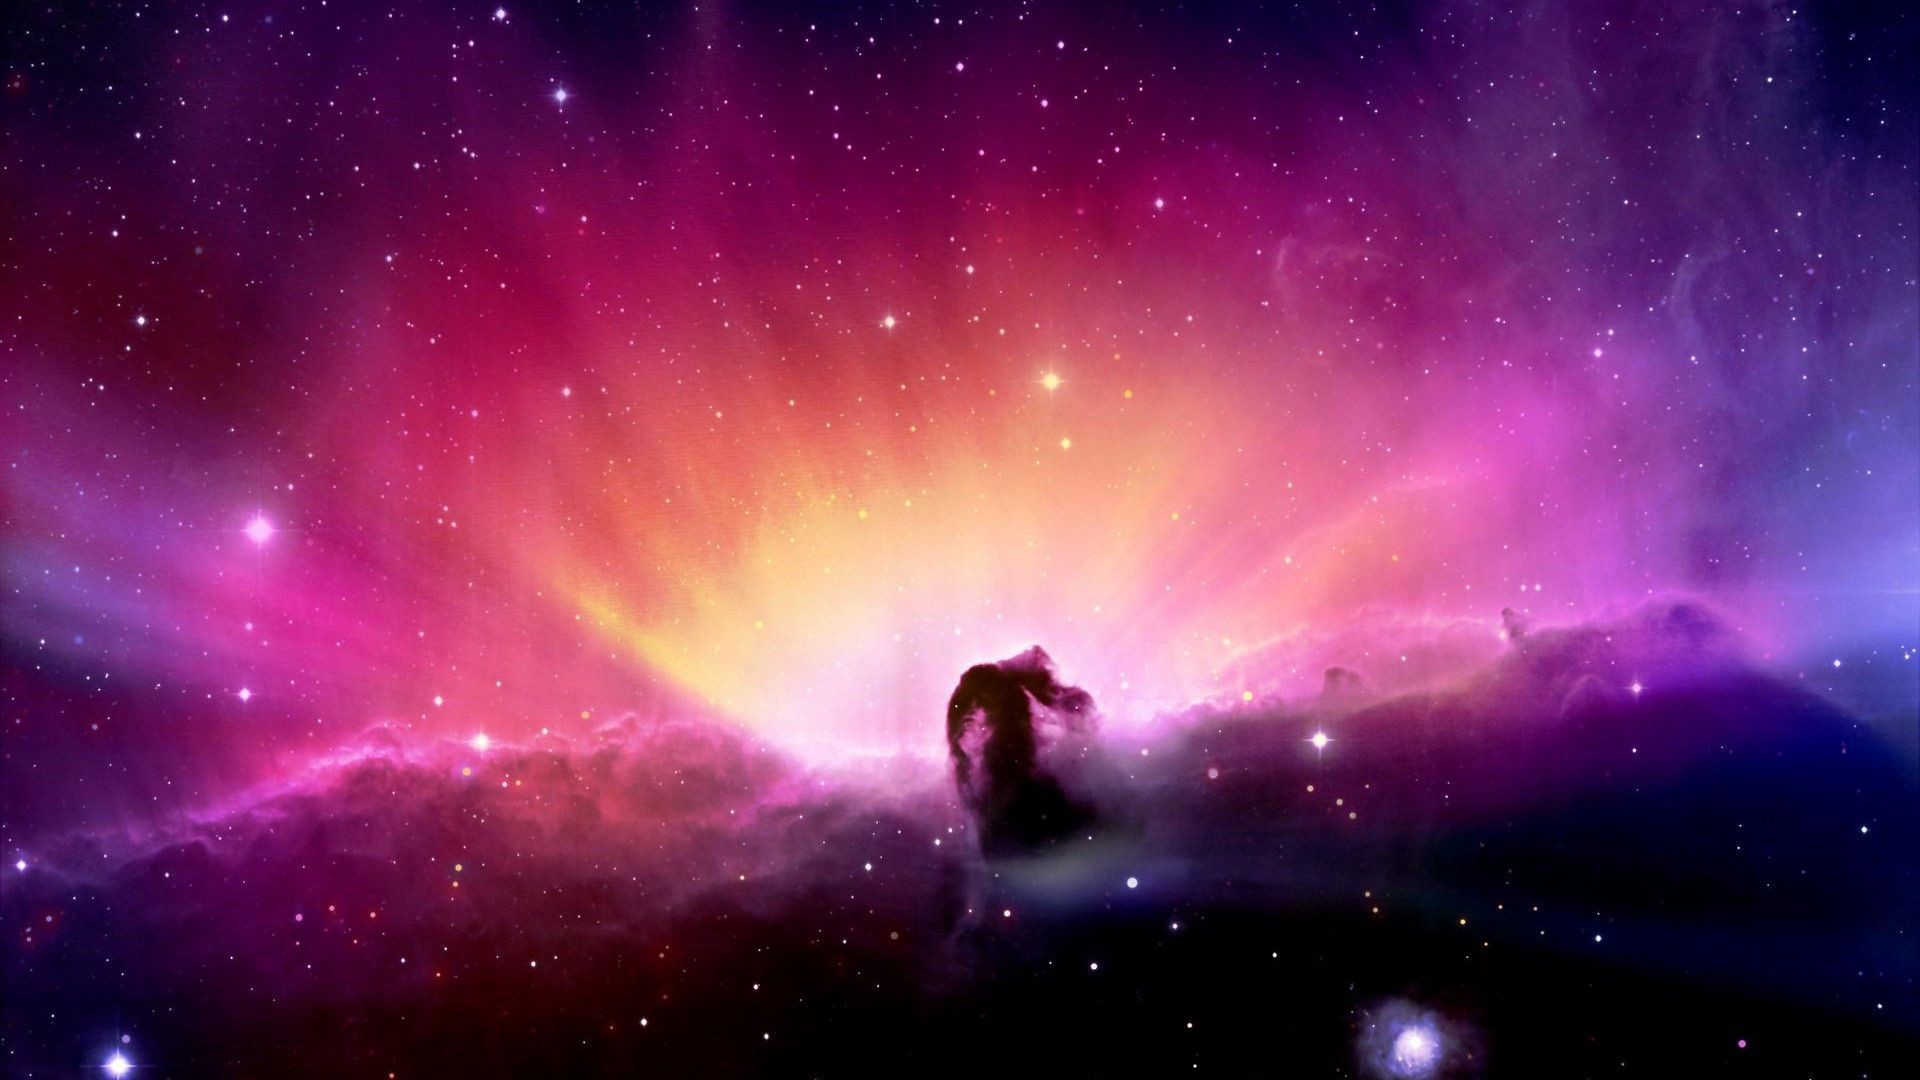 Hubble Space Wallpapers Iphone. Jesus Wallpaper Android with High Definition  …